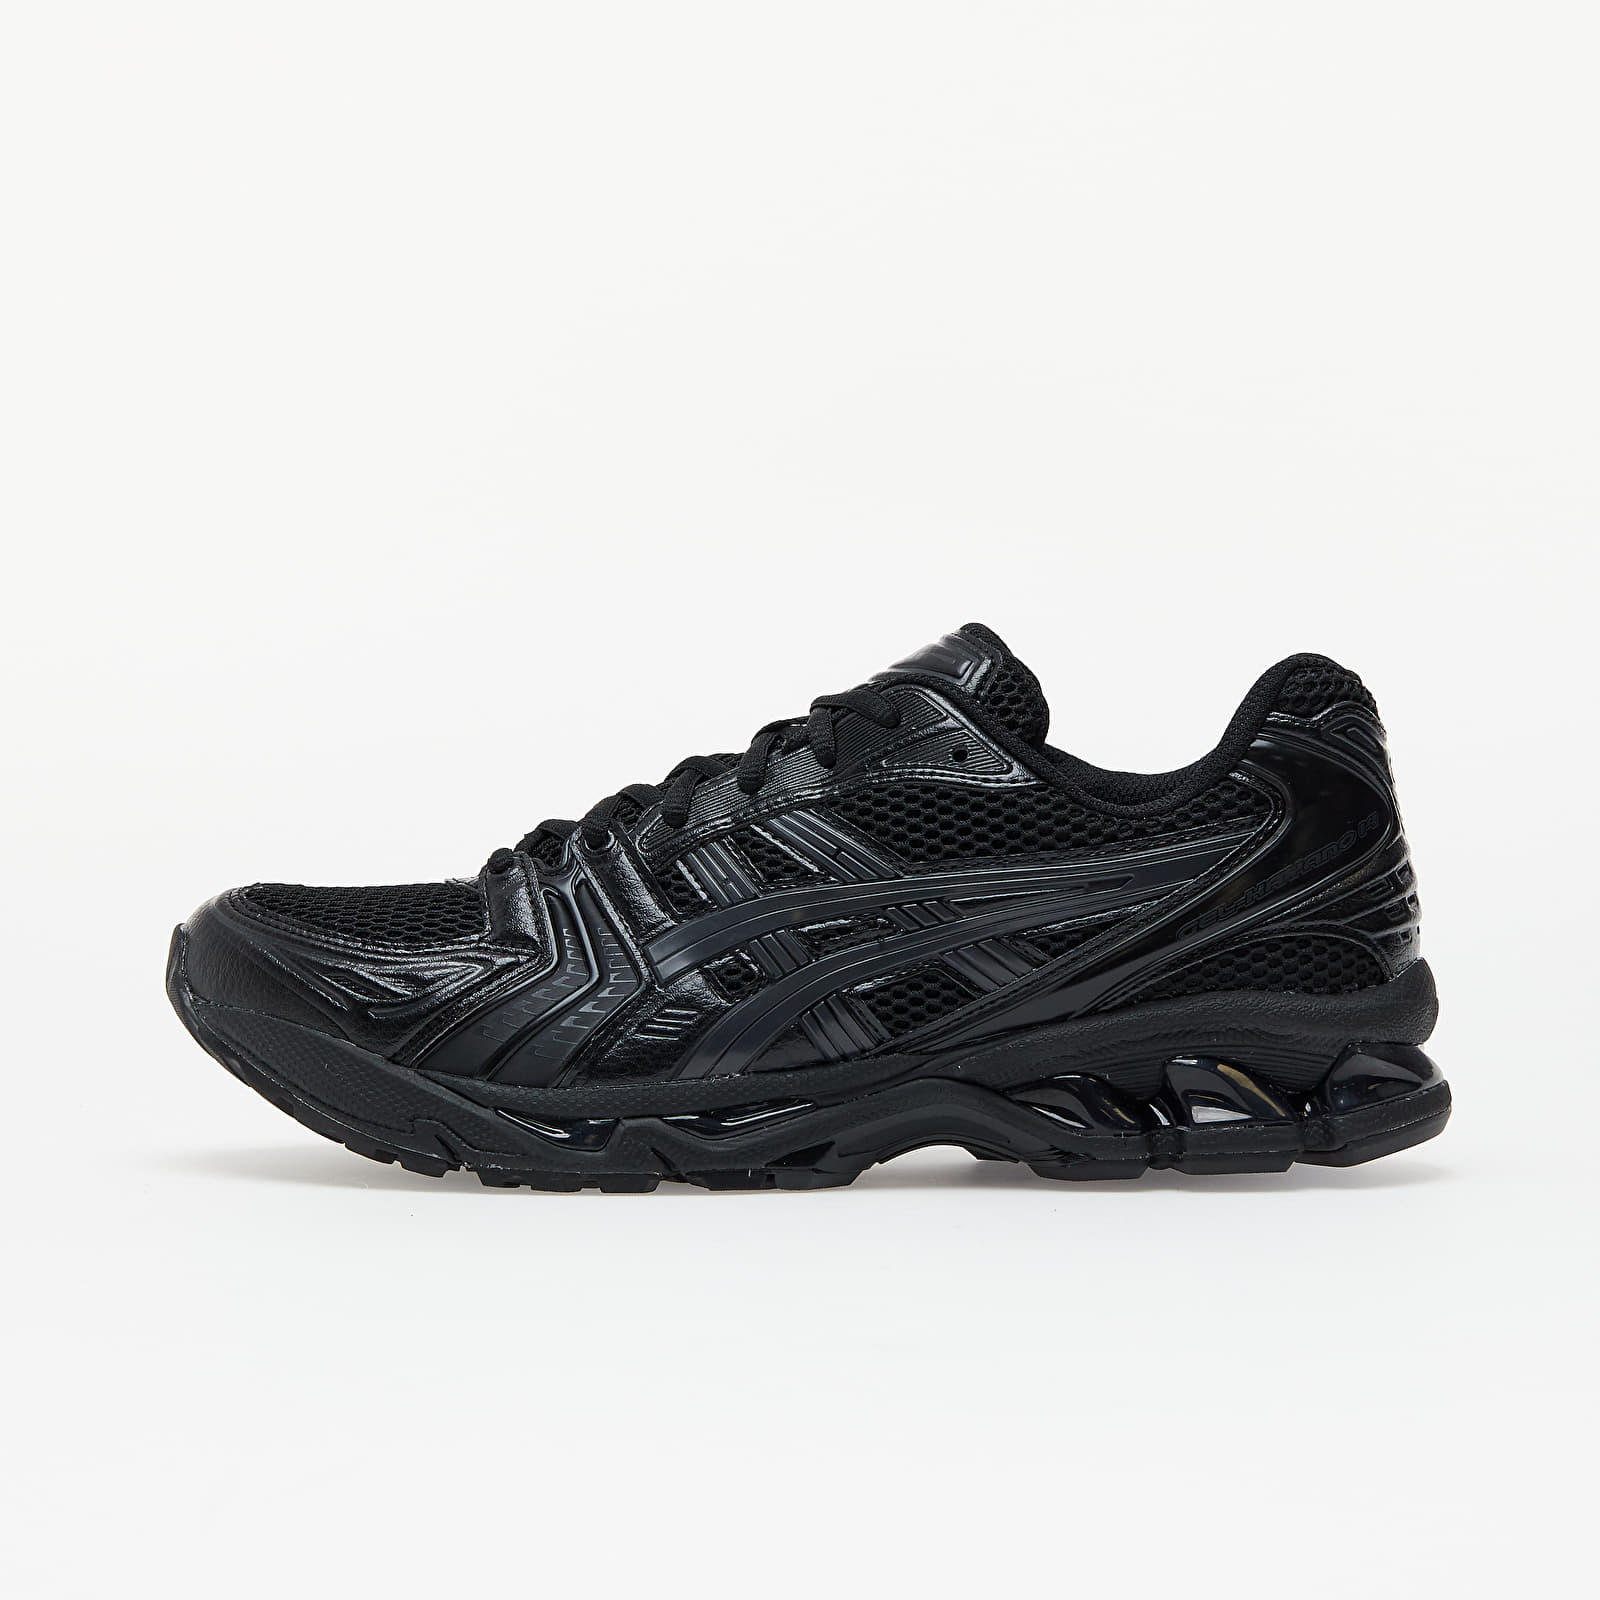 Asics Gel-Kayano 14 Black/ Graphite Grey EUR 43.5